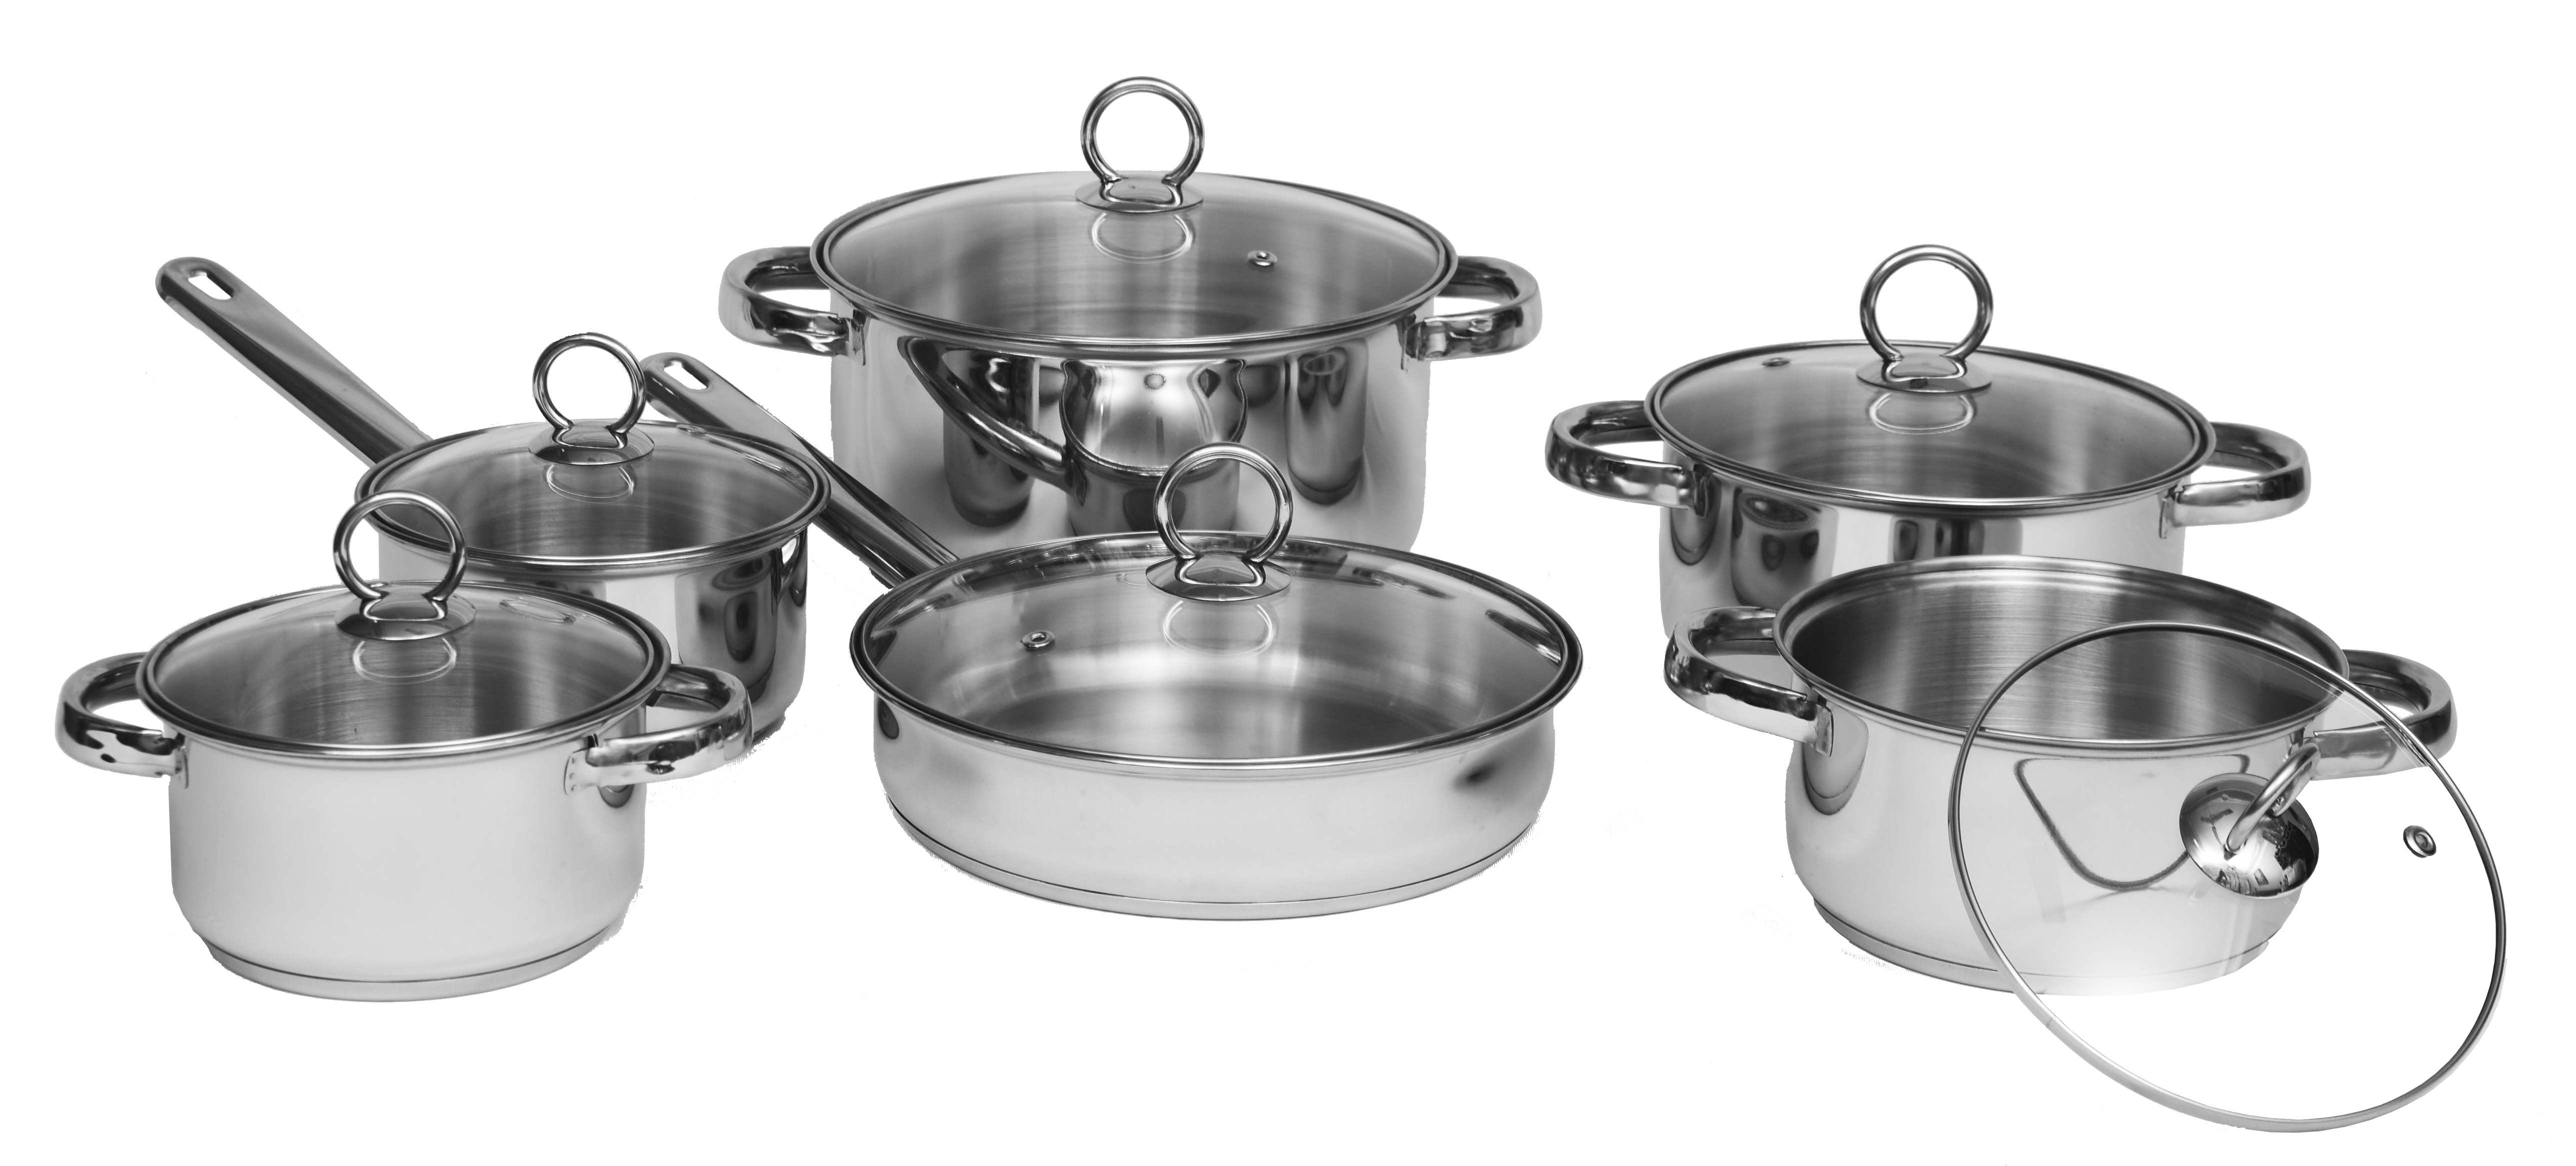 12pcs Straight Shape Stainless Steel Cookware Set With